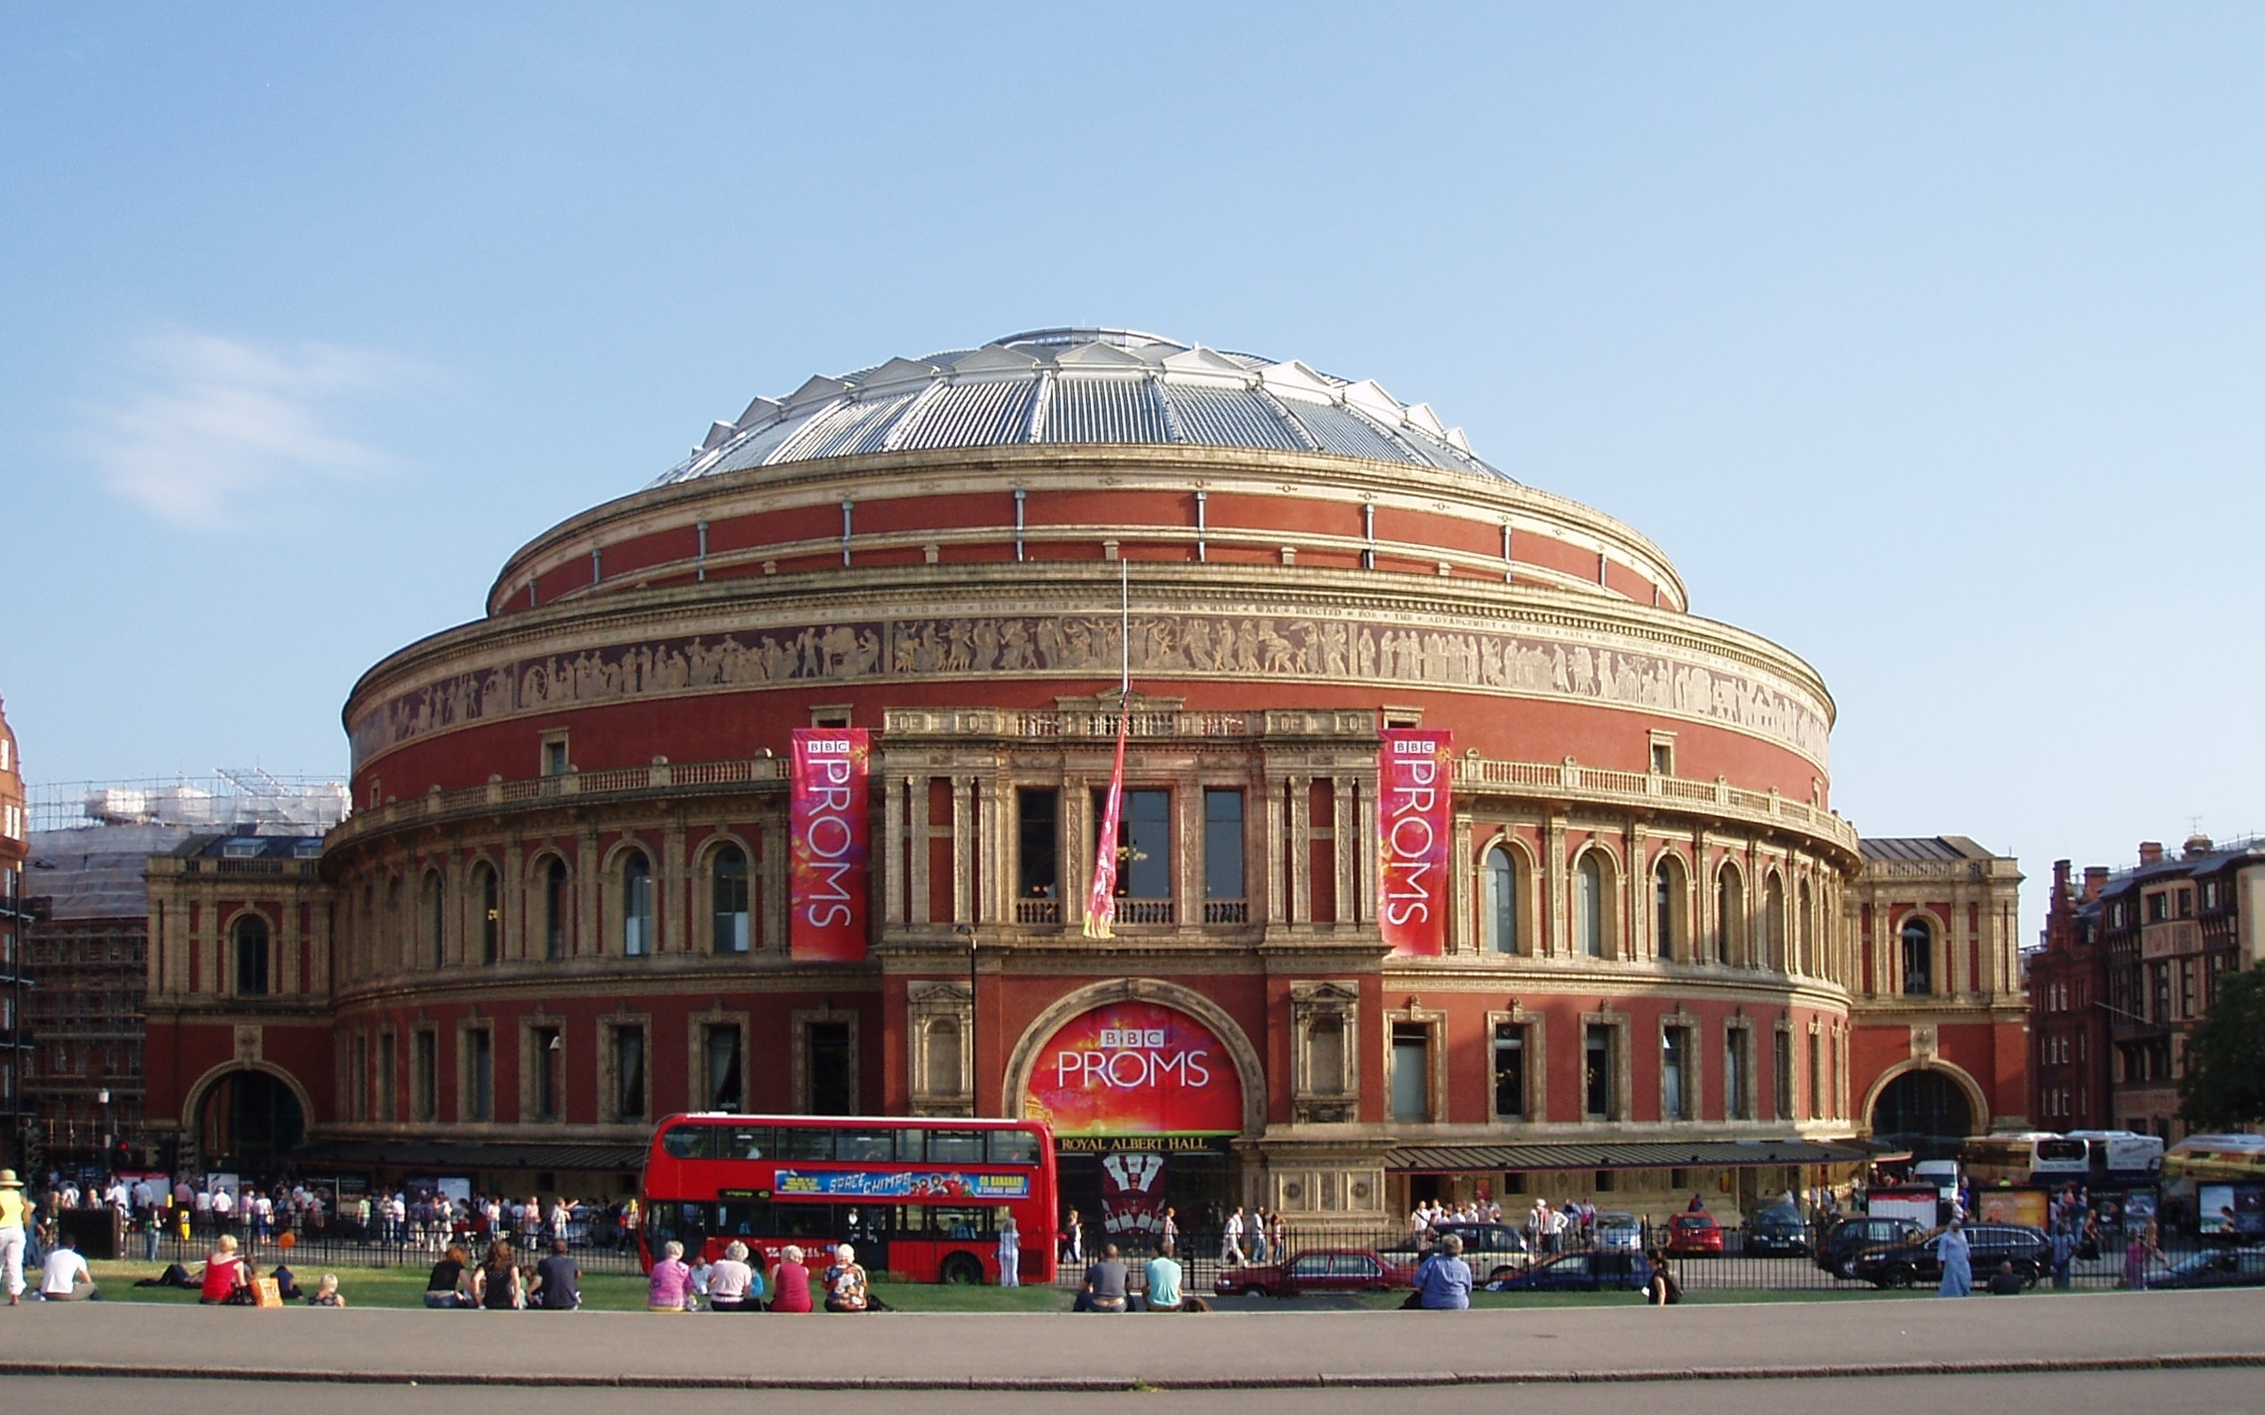 BBC Proms Royal Albert Hall